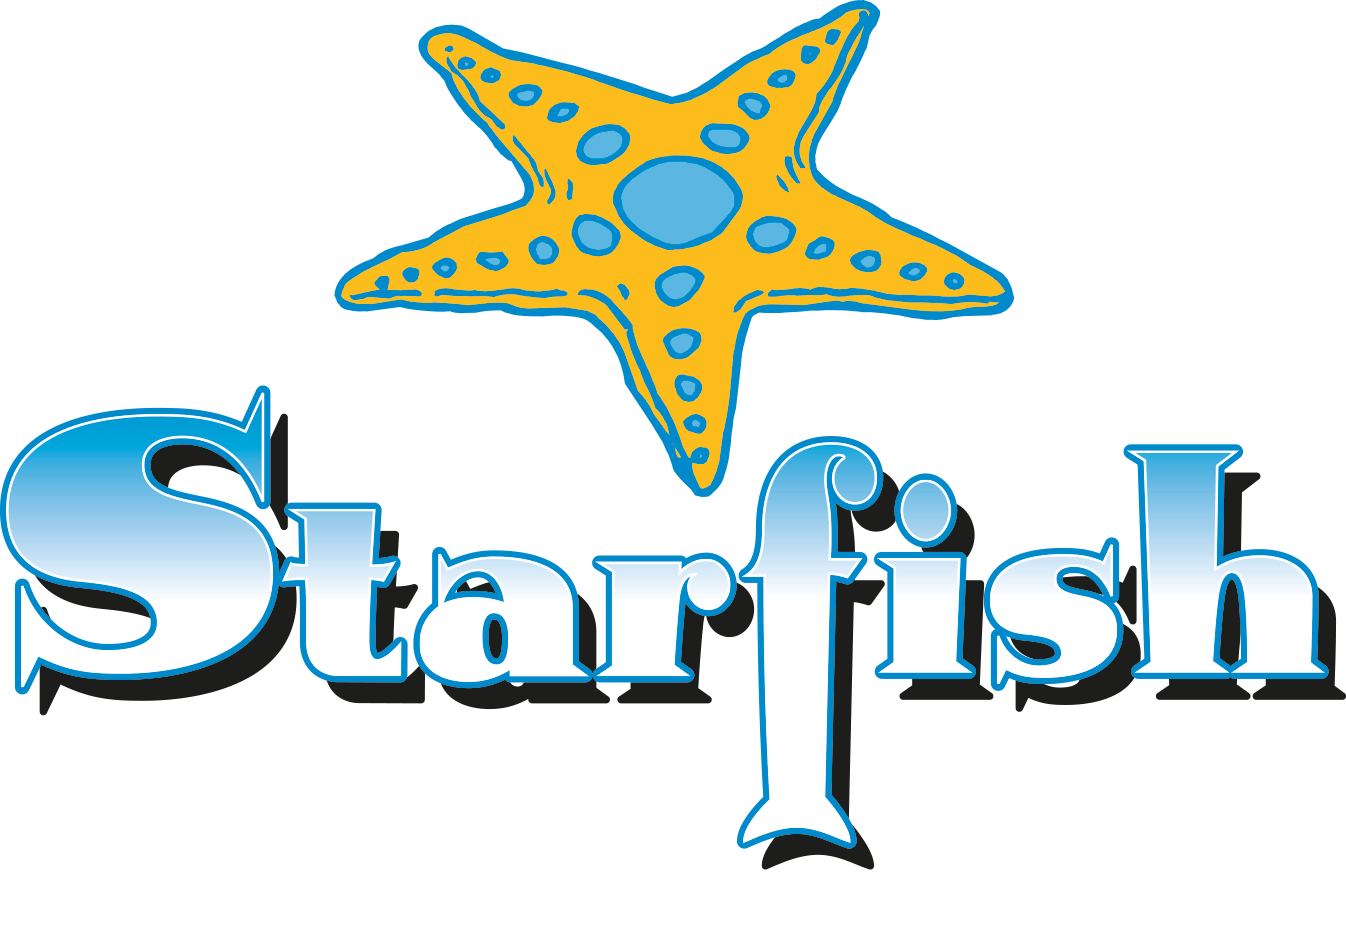 Starfish School Of Swimming